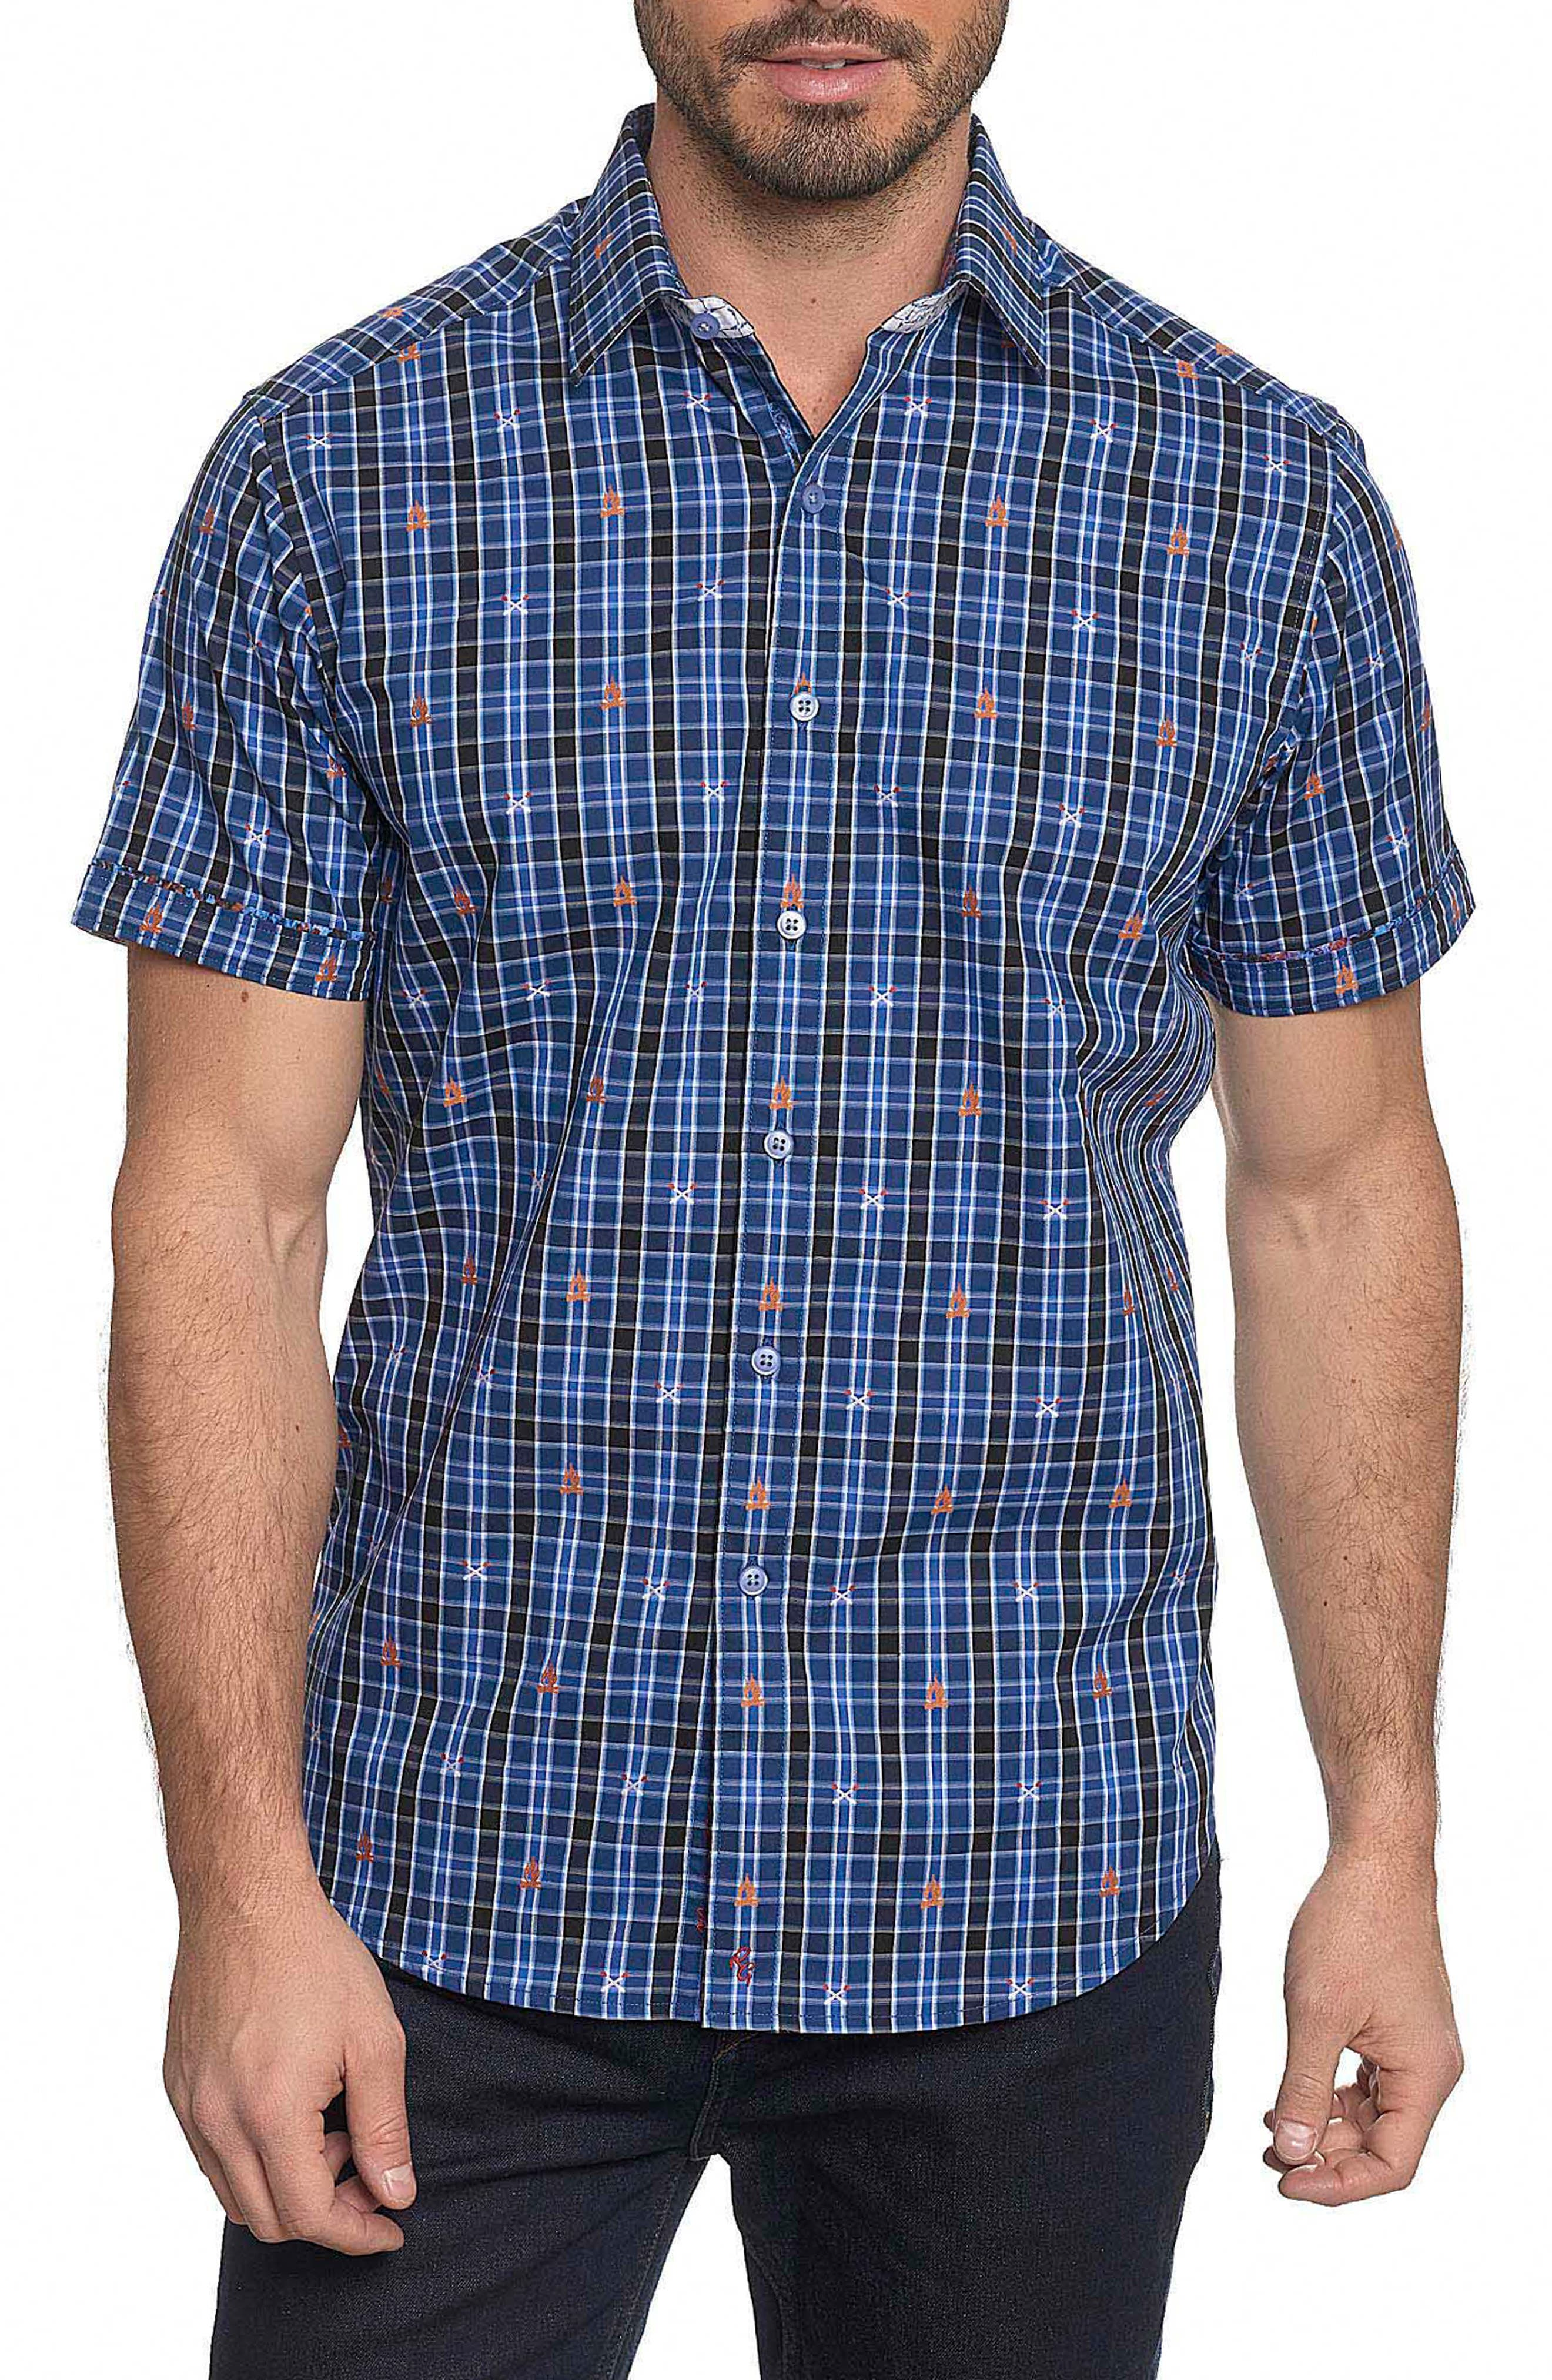 Main Image - Robert Graham Campfire Embroidered Check Sport Shirt